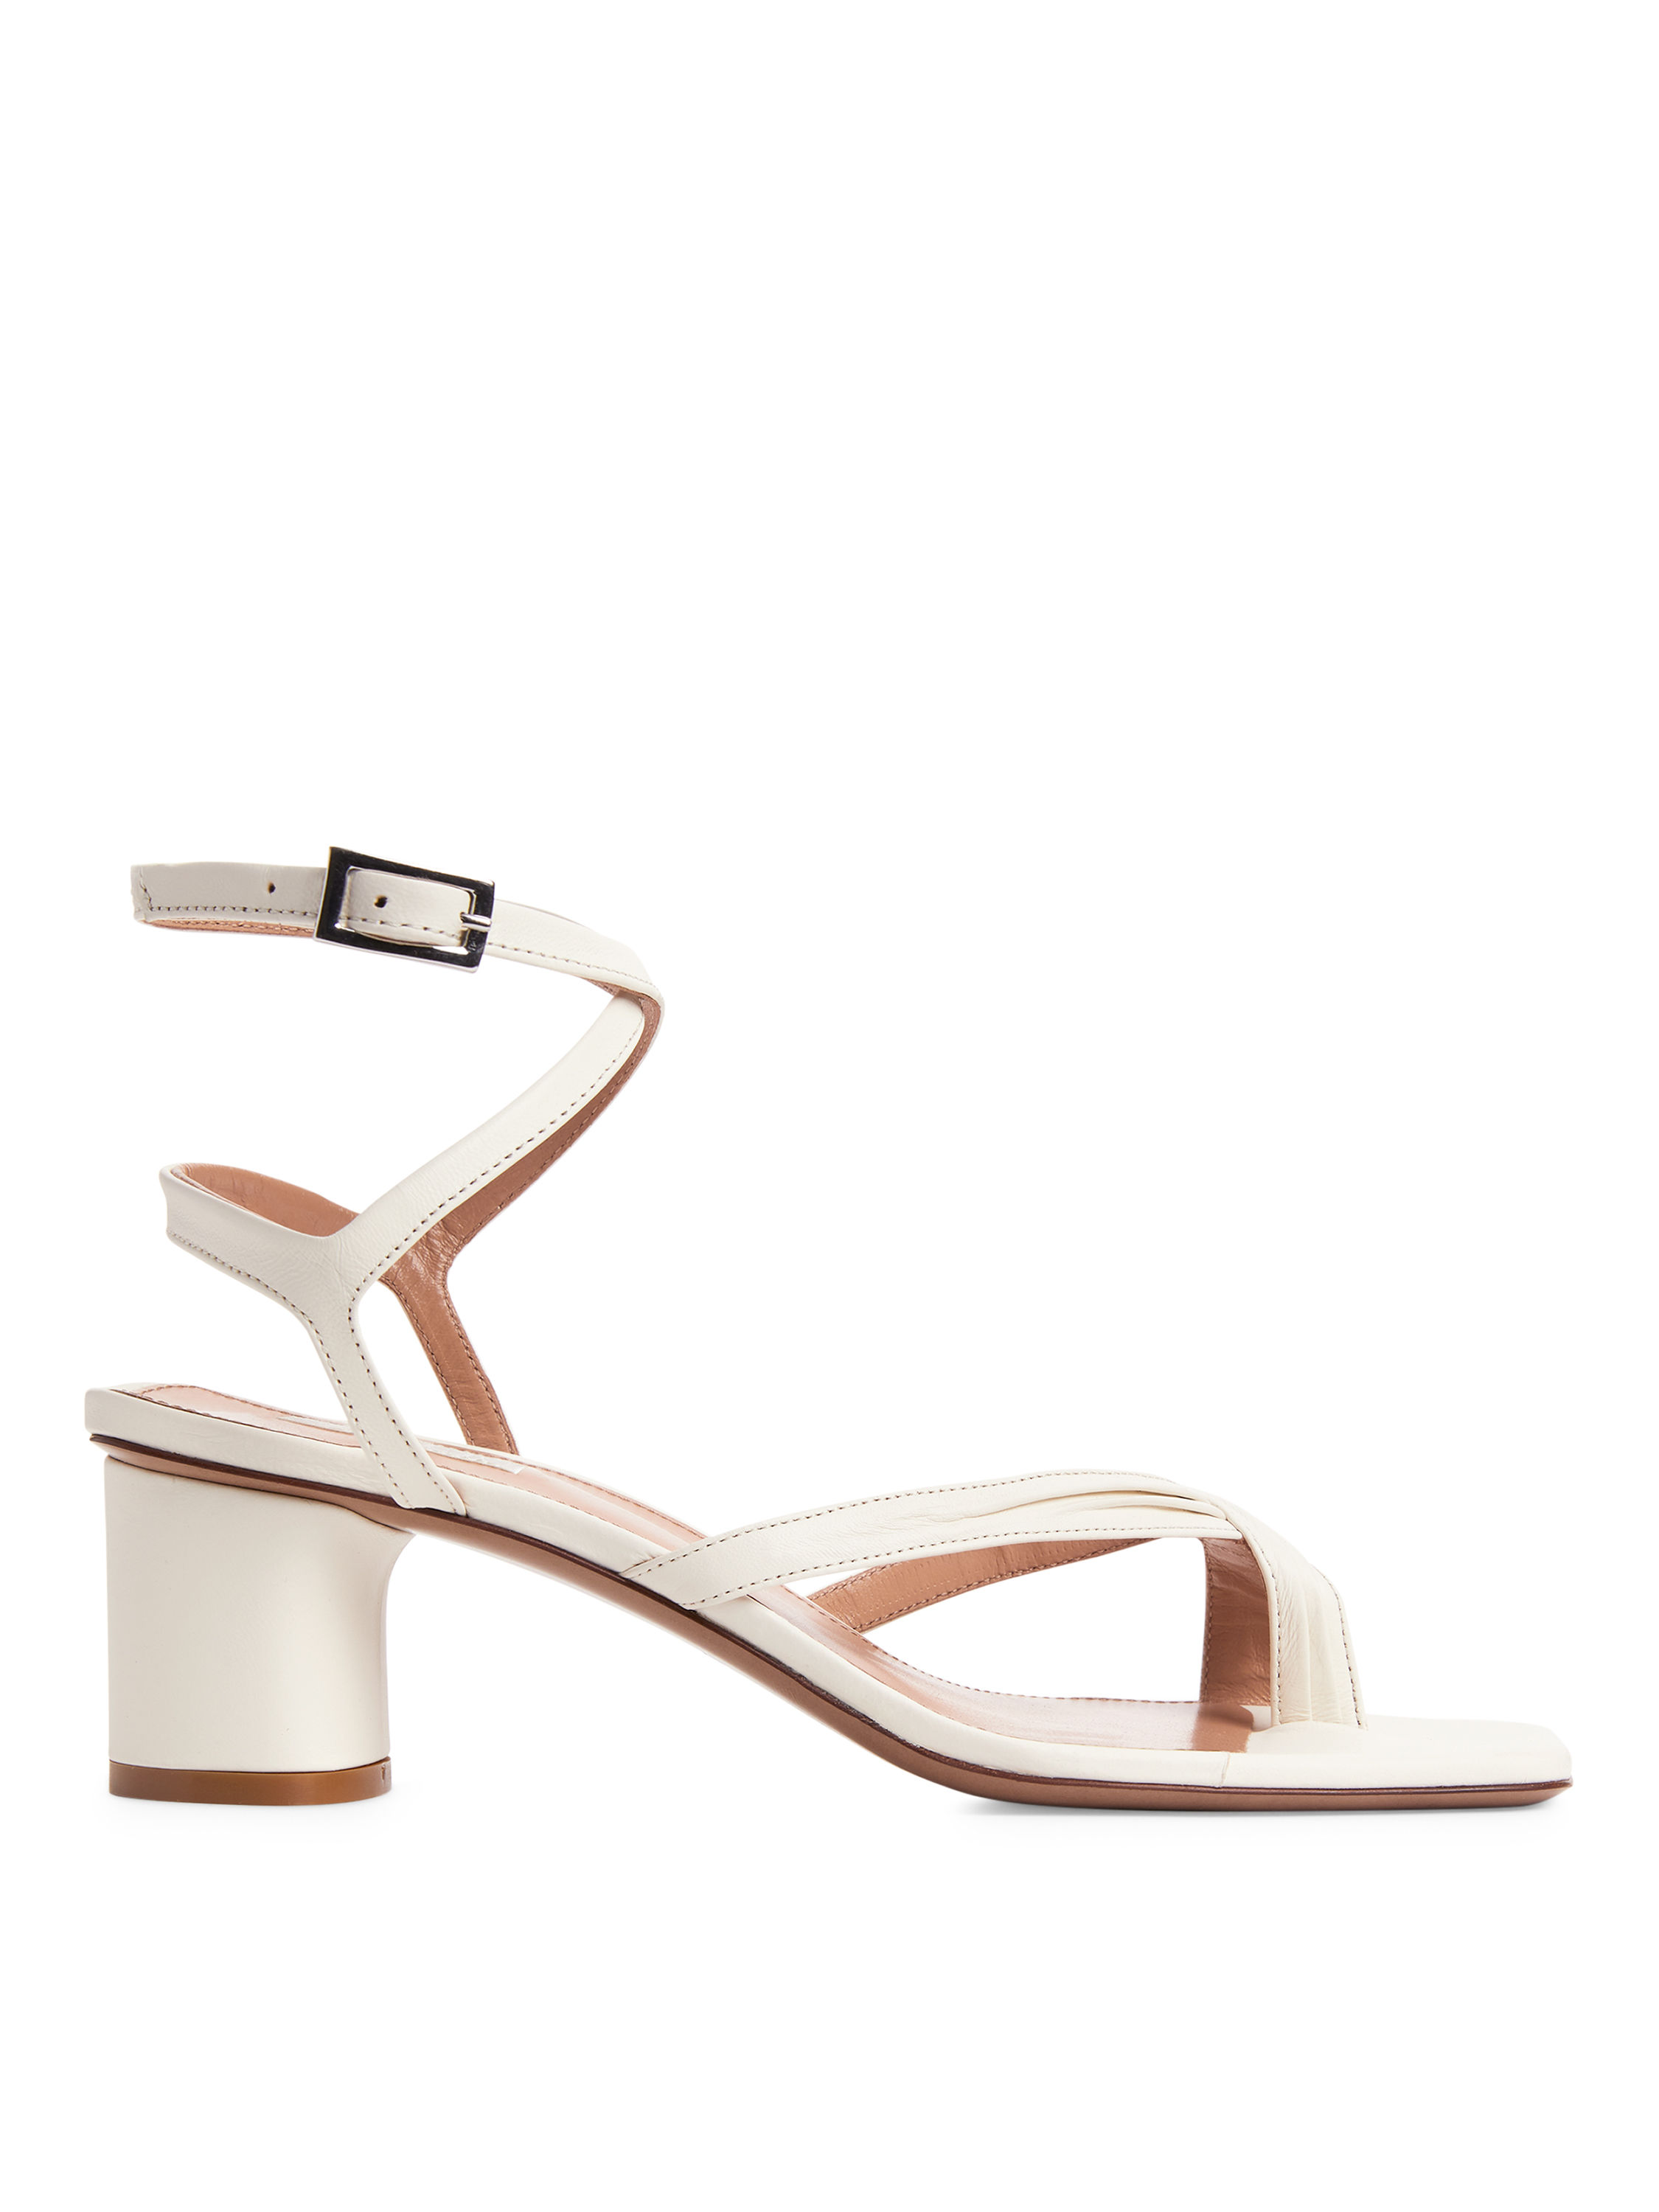 Fabric Swatch image of Arket ankle-wrap leather sandal in white